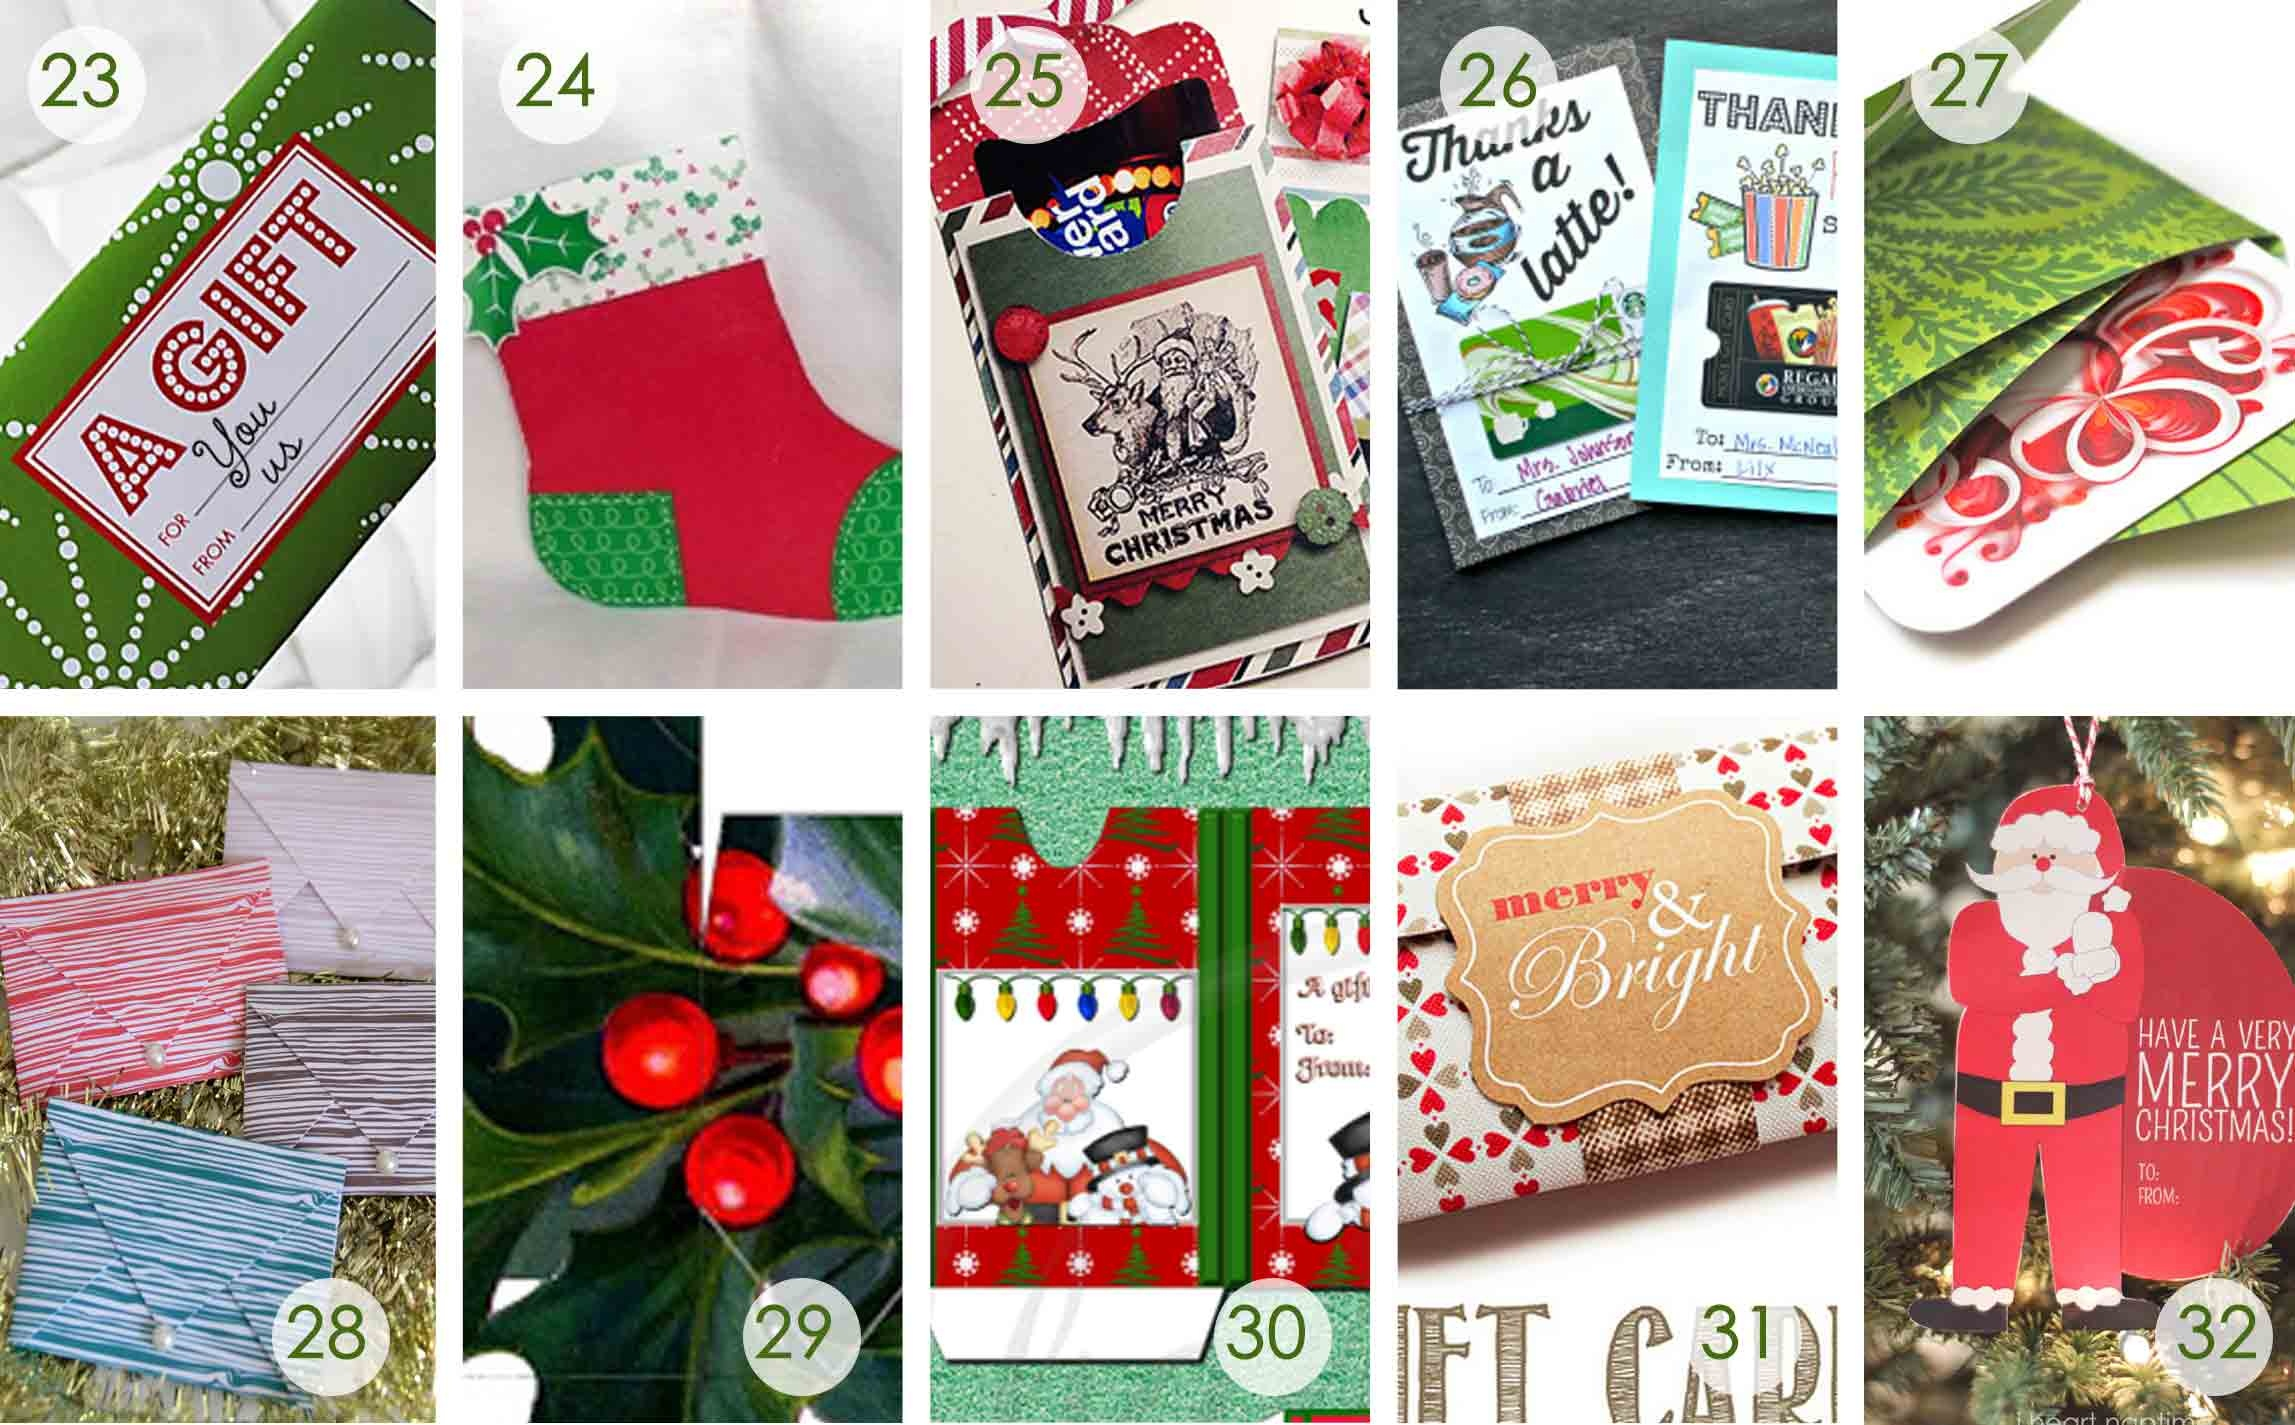 Over 50 Printable Gift Card Holders For The Holidays | Gcg - Free Printable Christmas Gift Card Envelopes